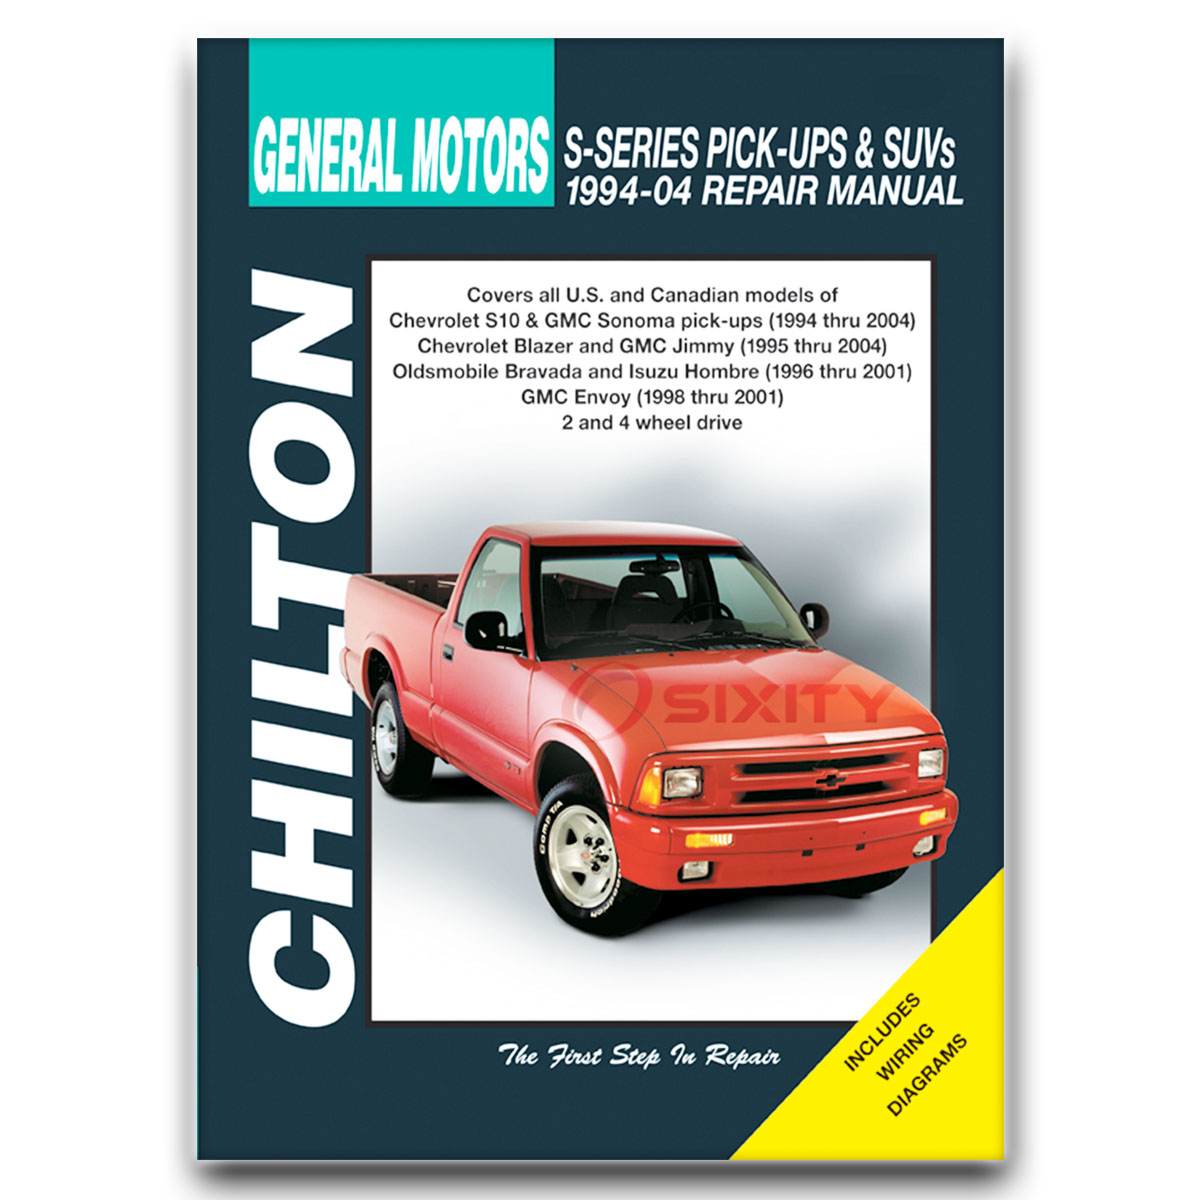 chevy s10 chilton repair manual base ss ls zr2 xtreme zr5 shop rh ebay com 1999 Chevrolet Blazer 1998 Chevrolet Blazer Inside